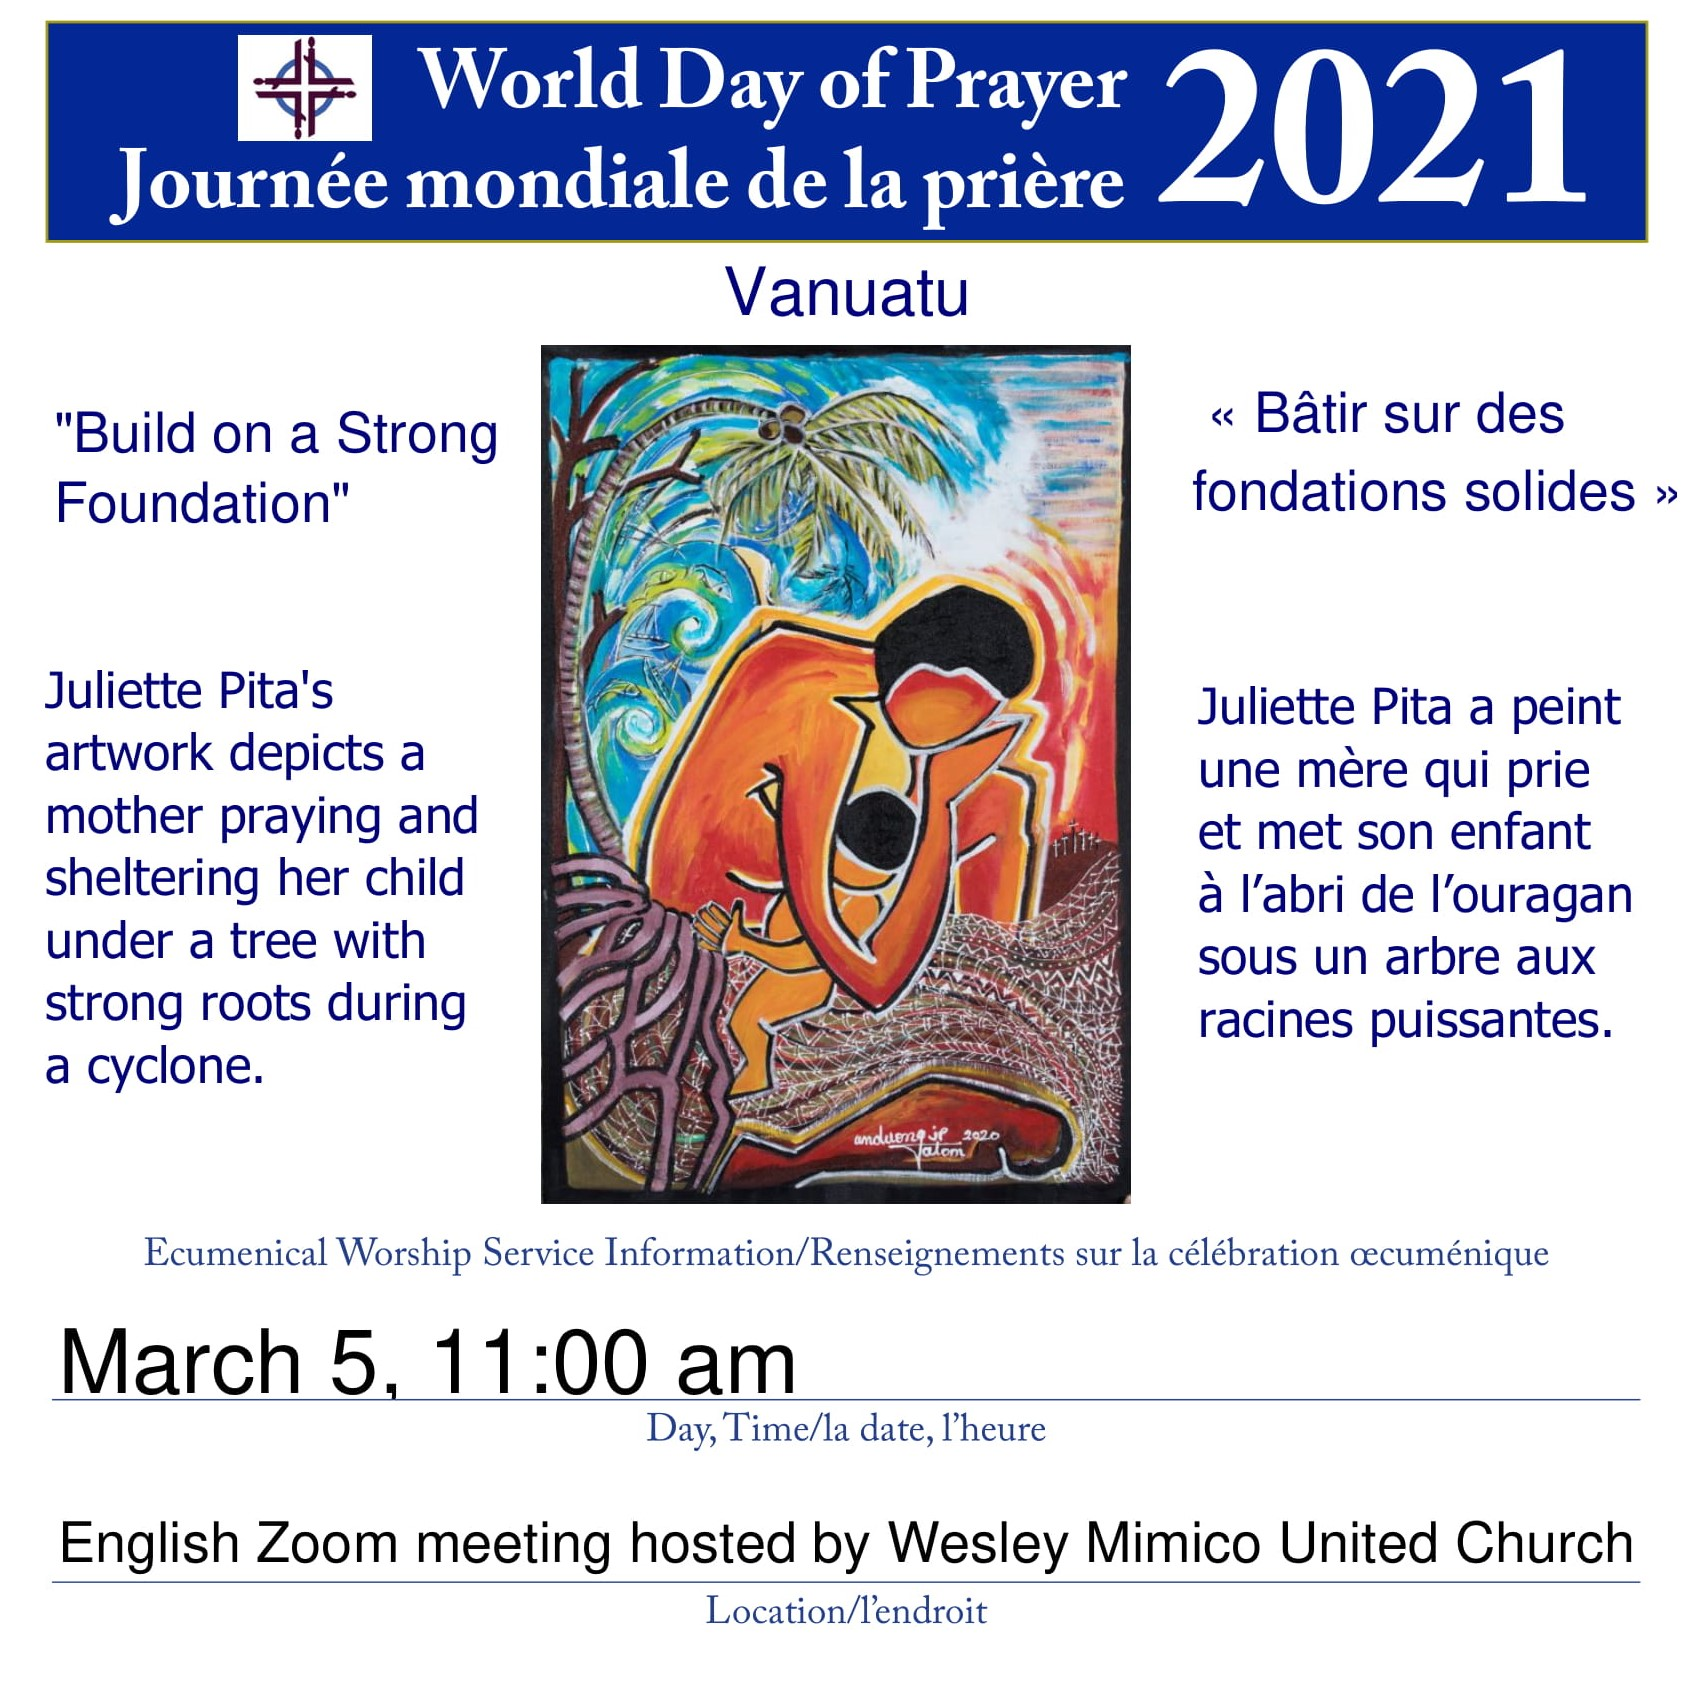 World Day Of Prayer, March 5, 2021 At 11:00 Am On Zoom